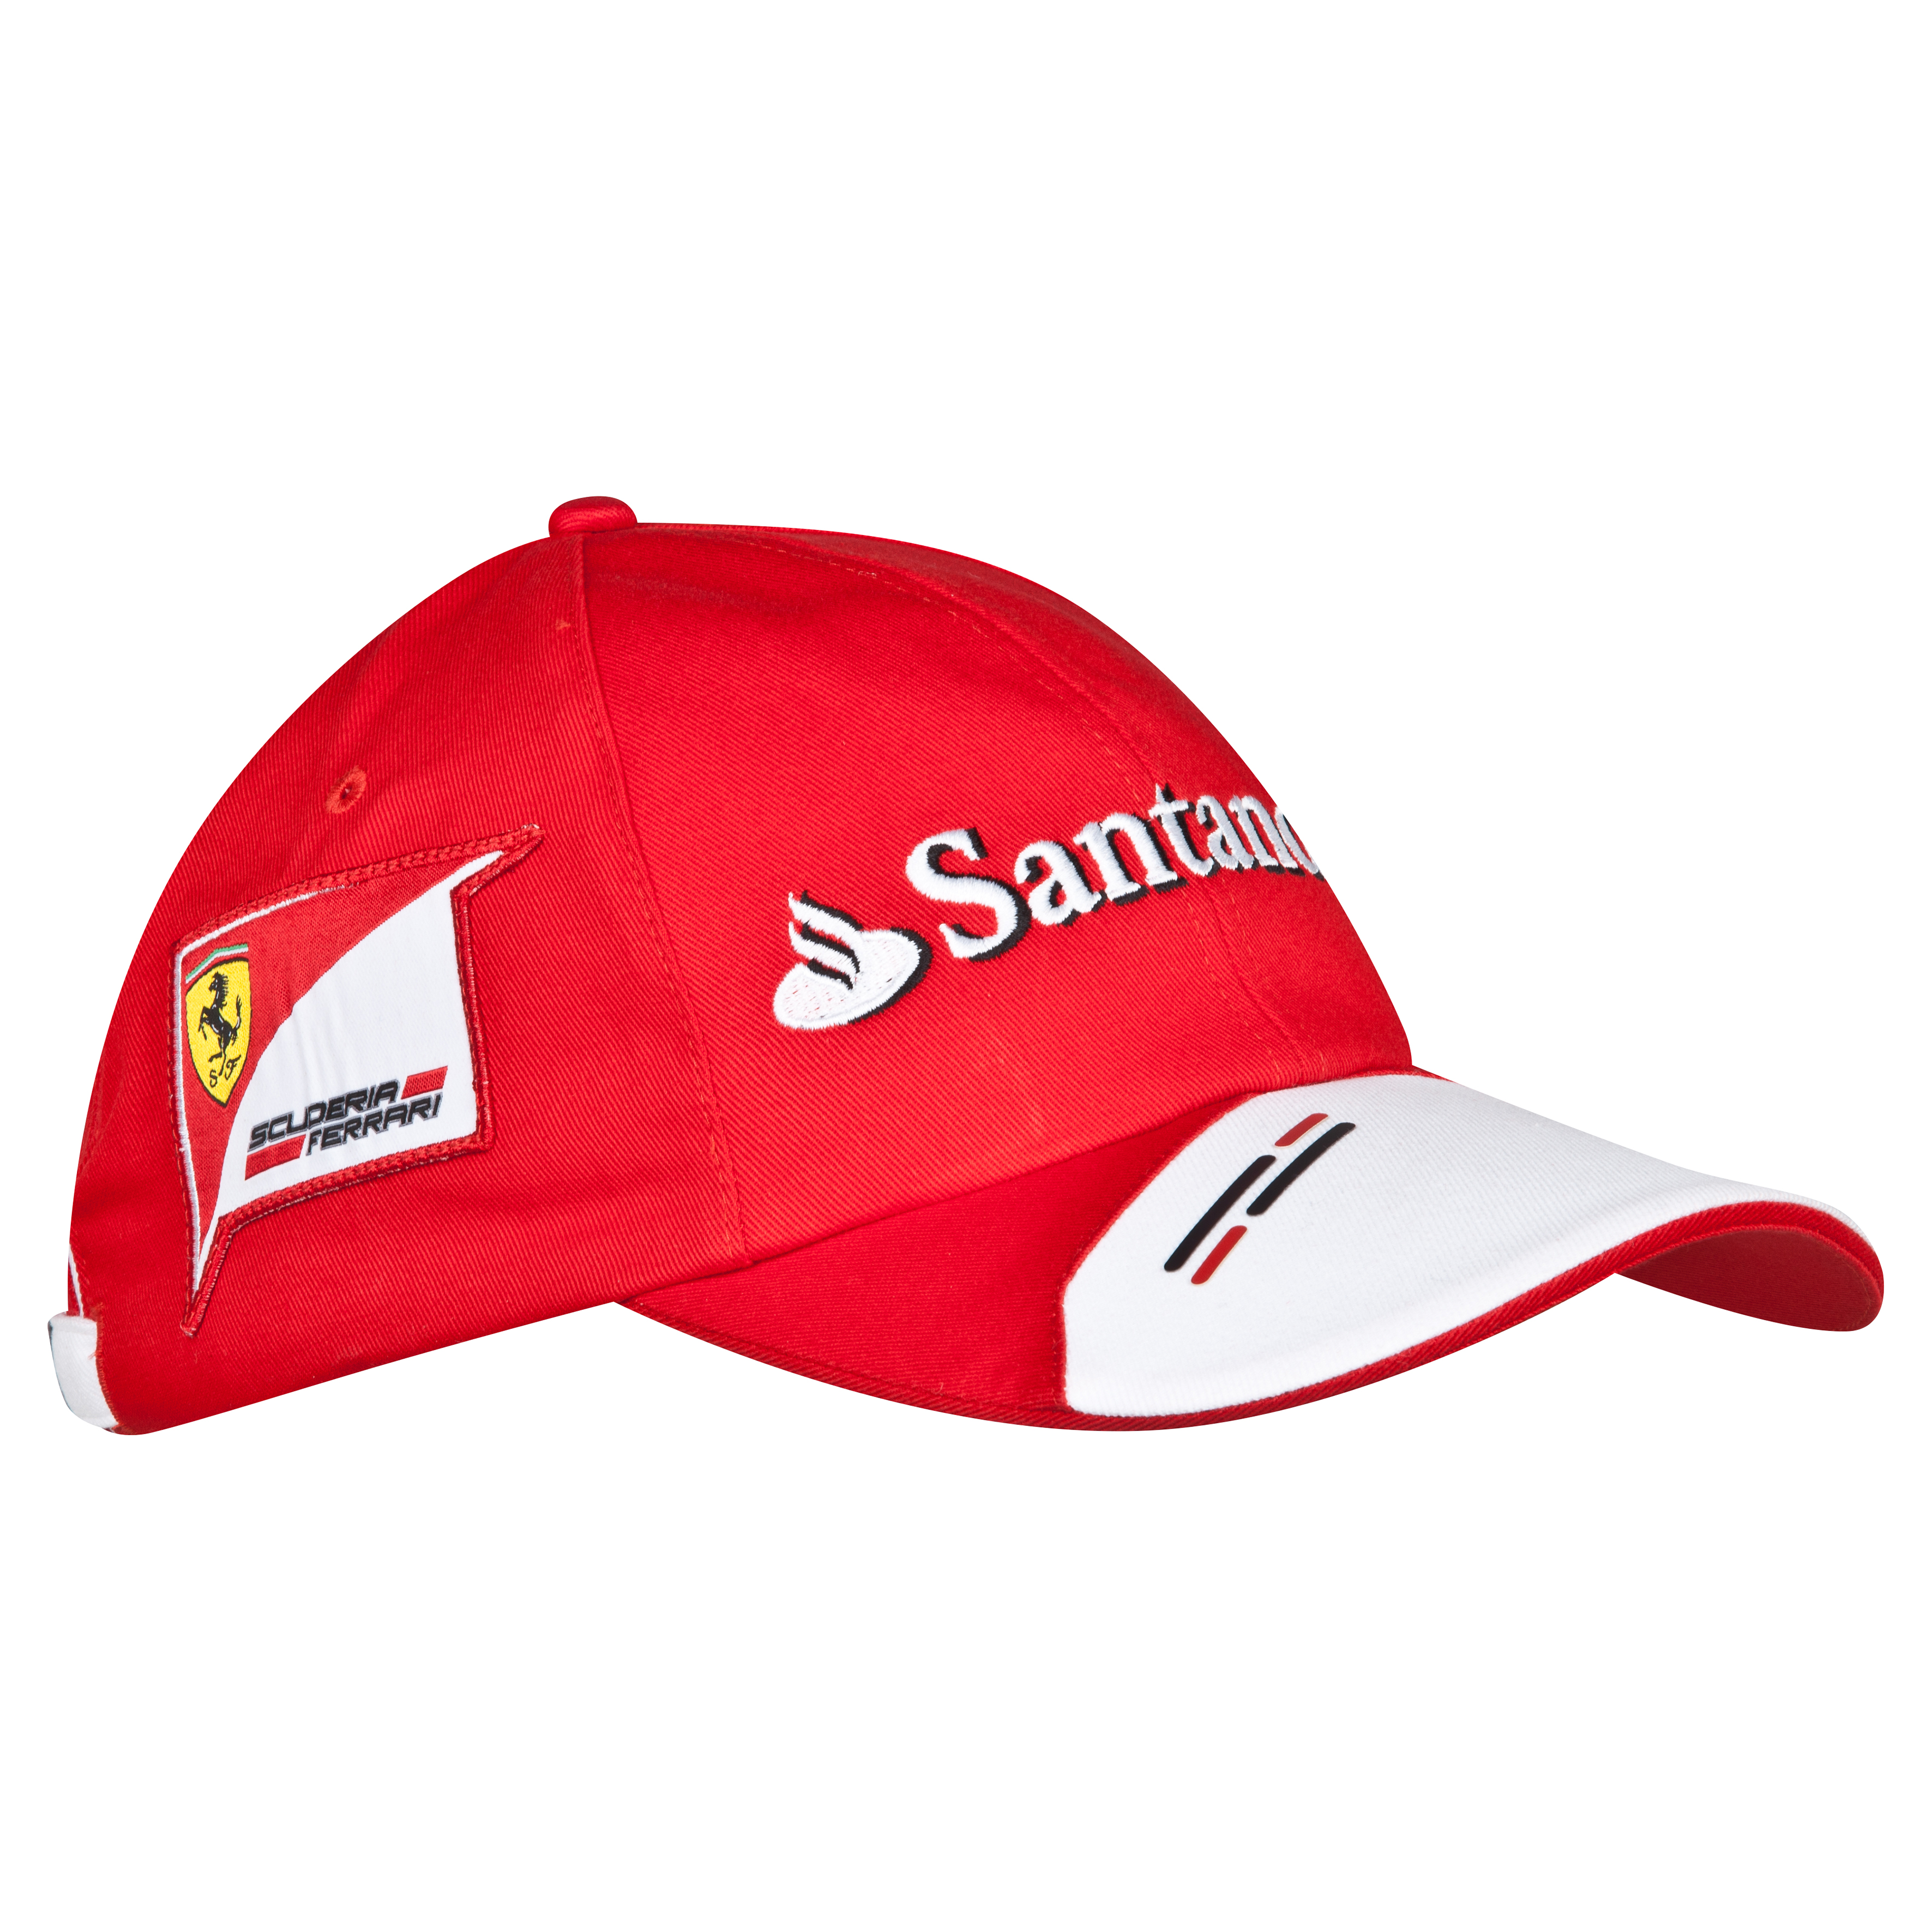 Scuderia Ferrari F1 2013 Team Cap Red